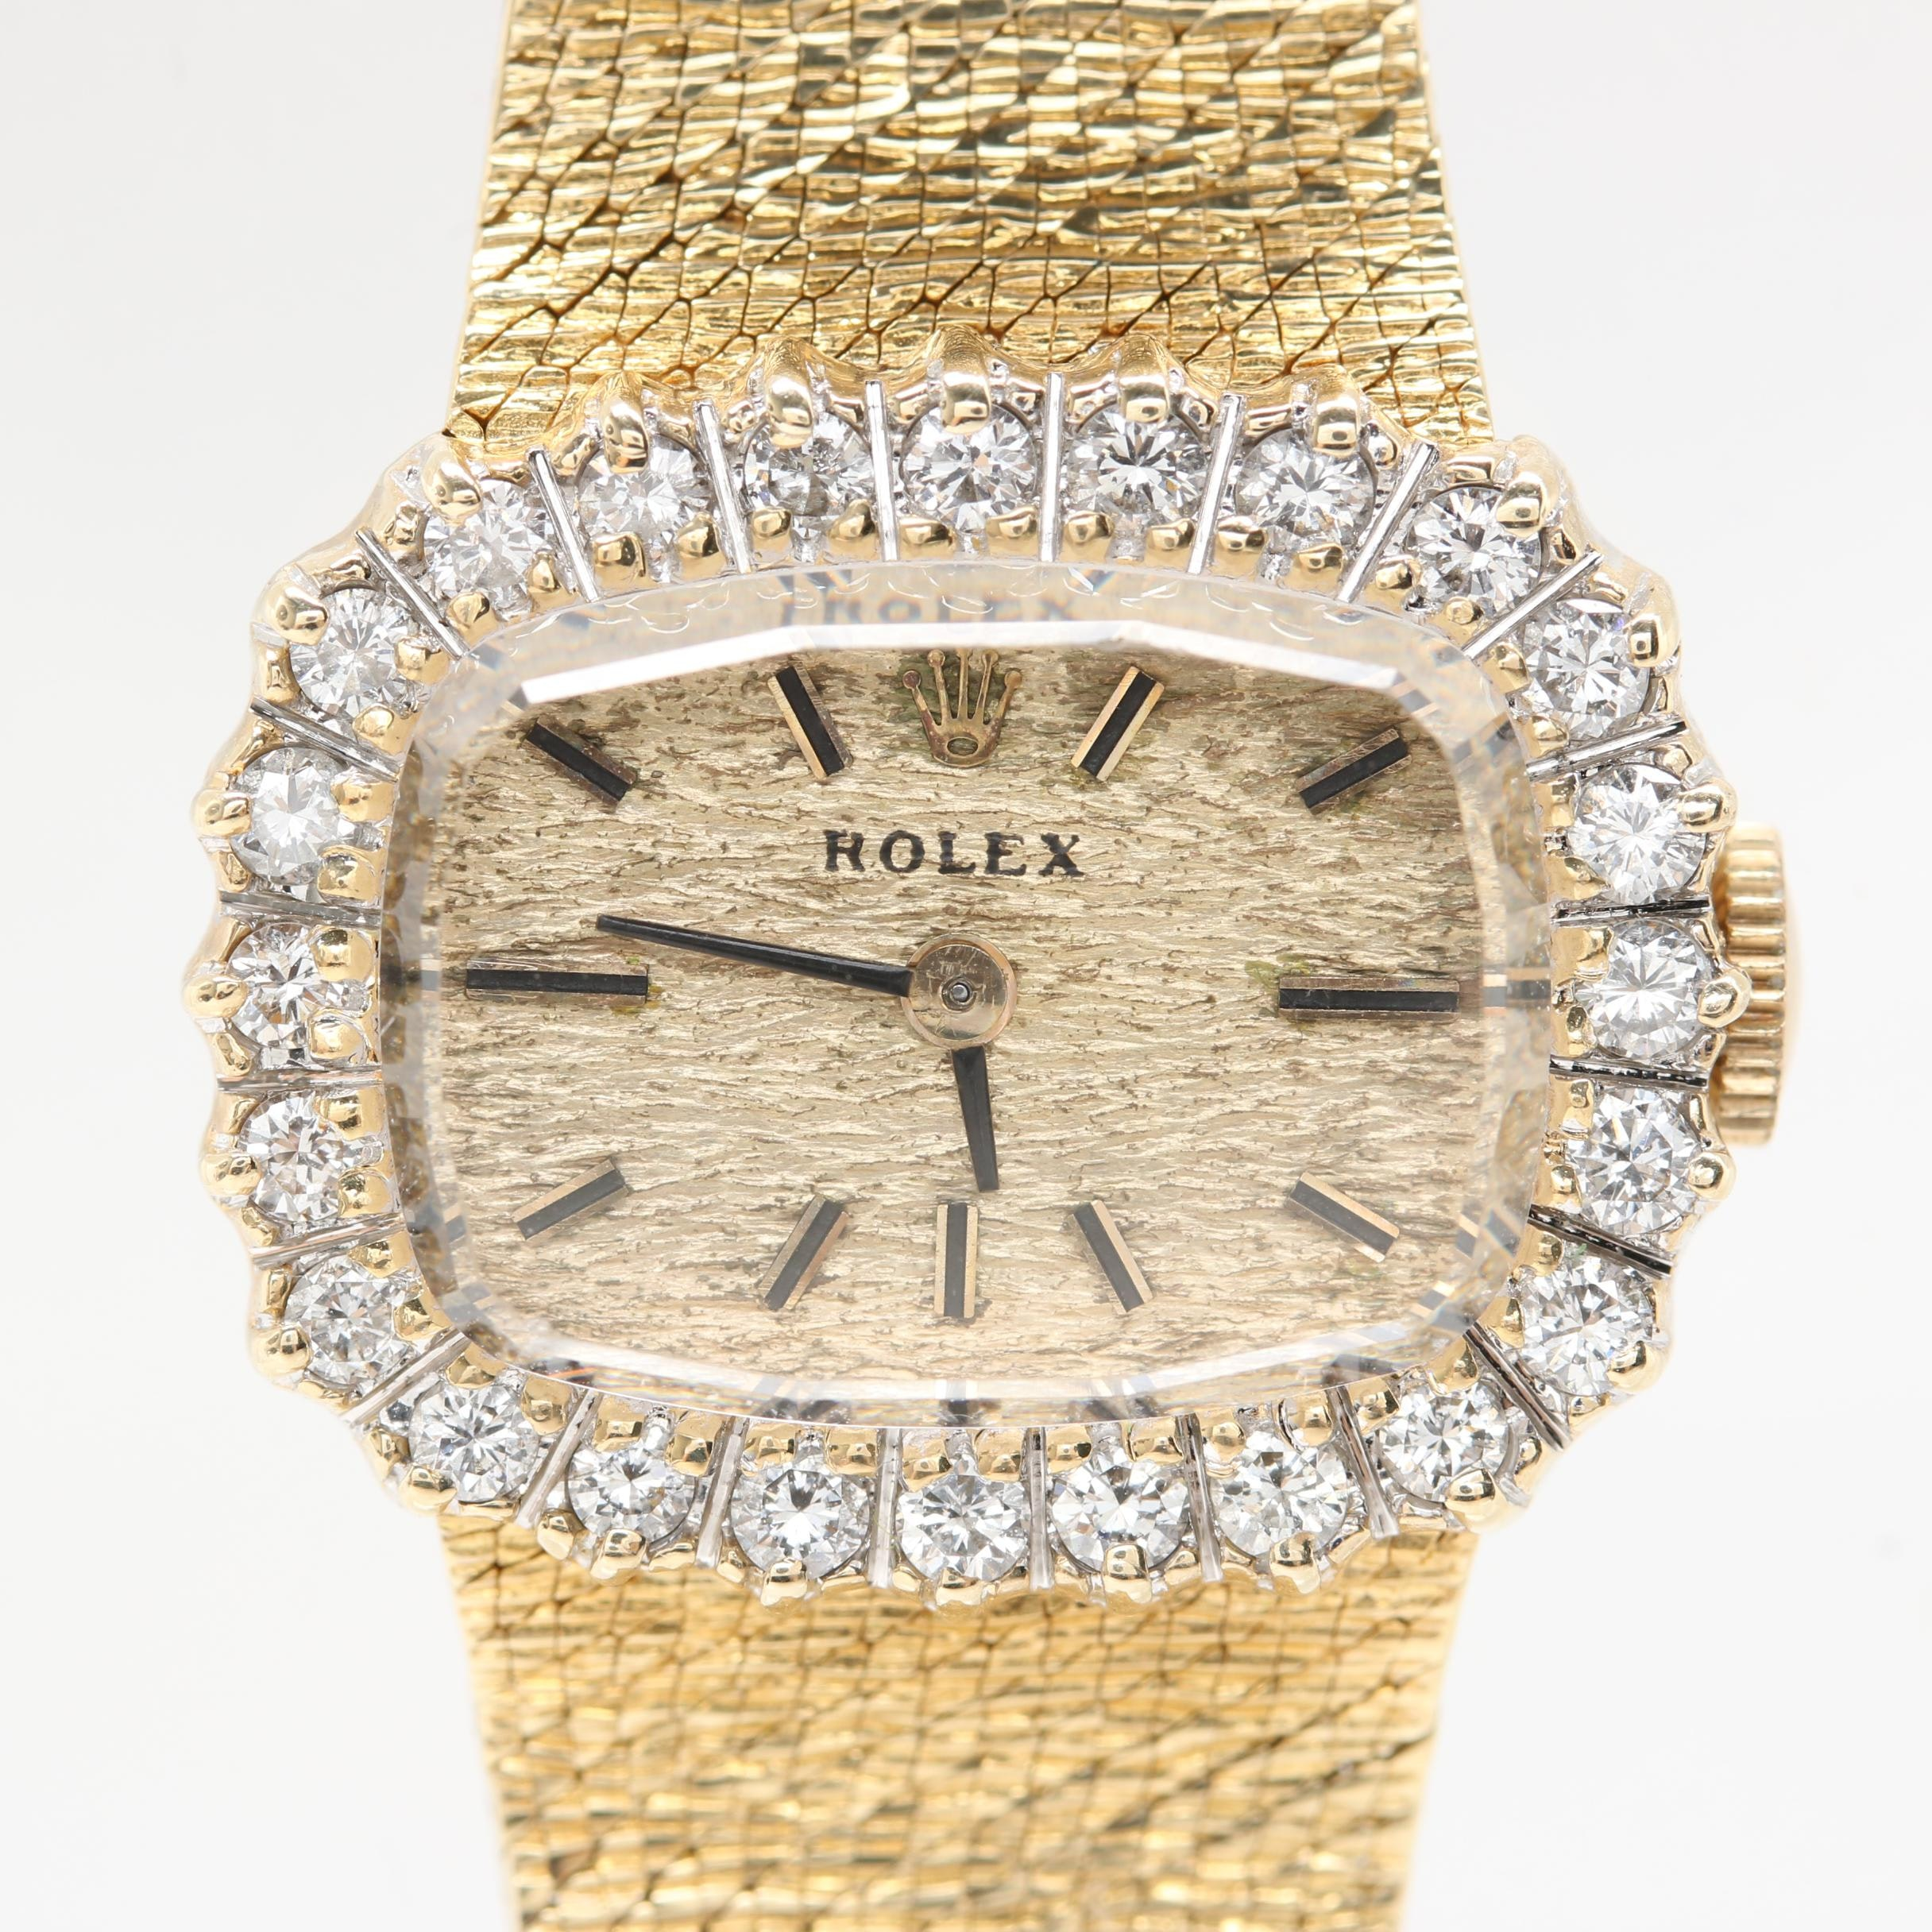 Rolex 14K Yellow Gold Diamond Wristwatch